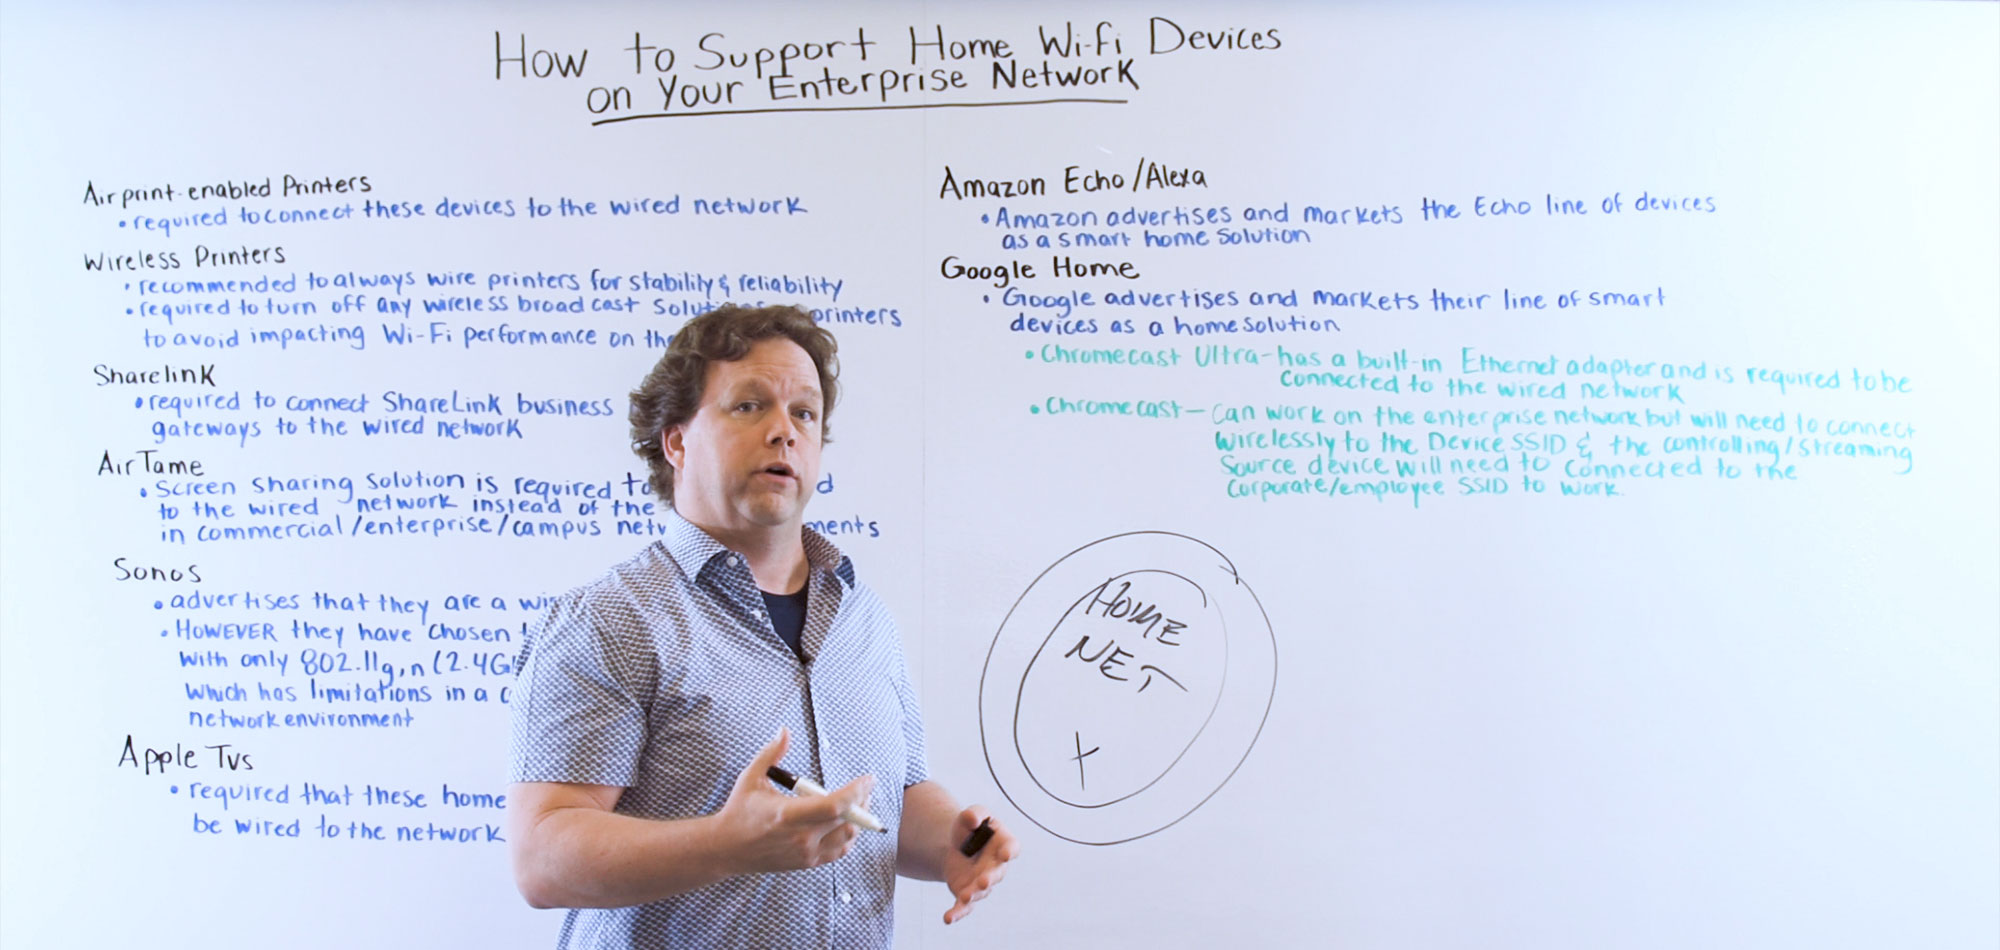 How-to-Support-Home-Devices-on-Your-Enterprise-Network